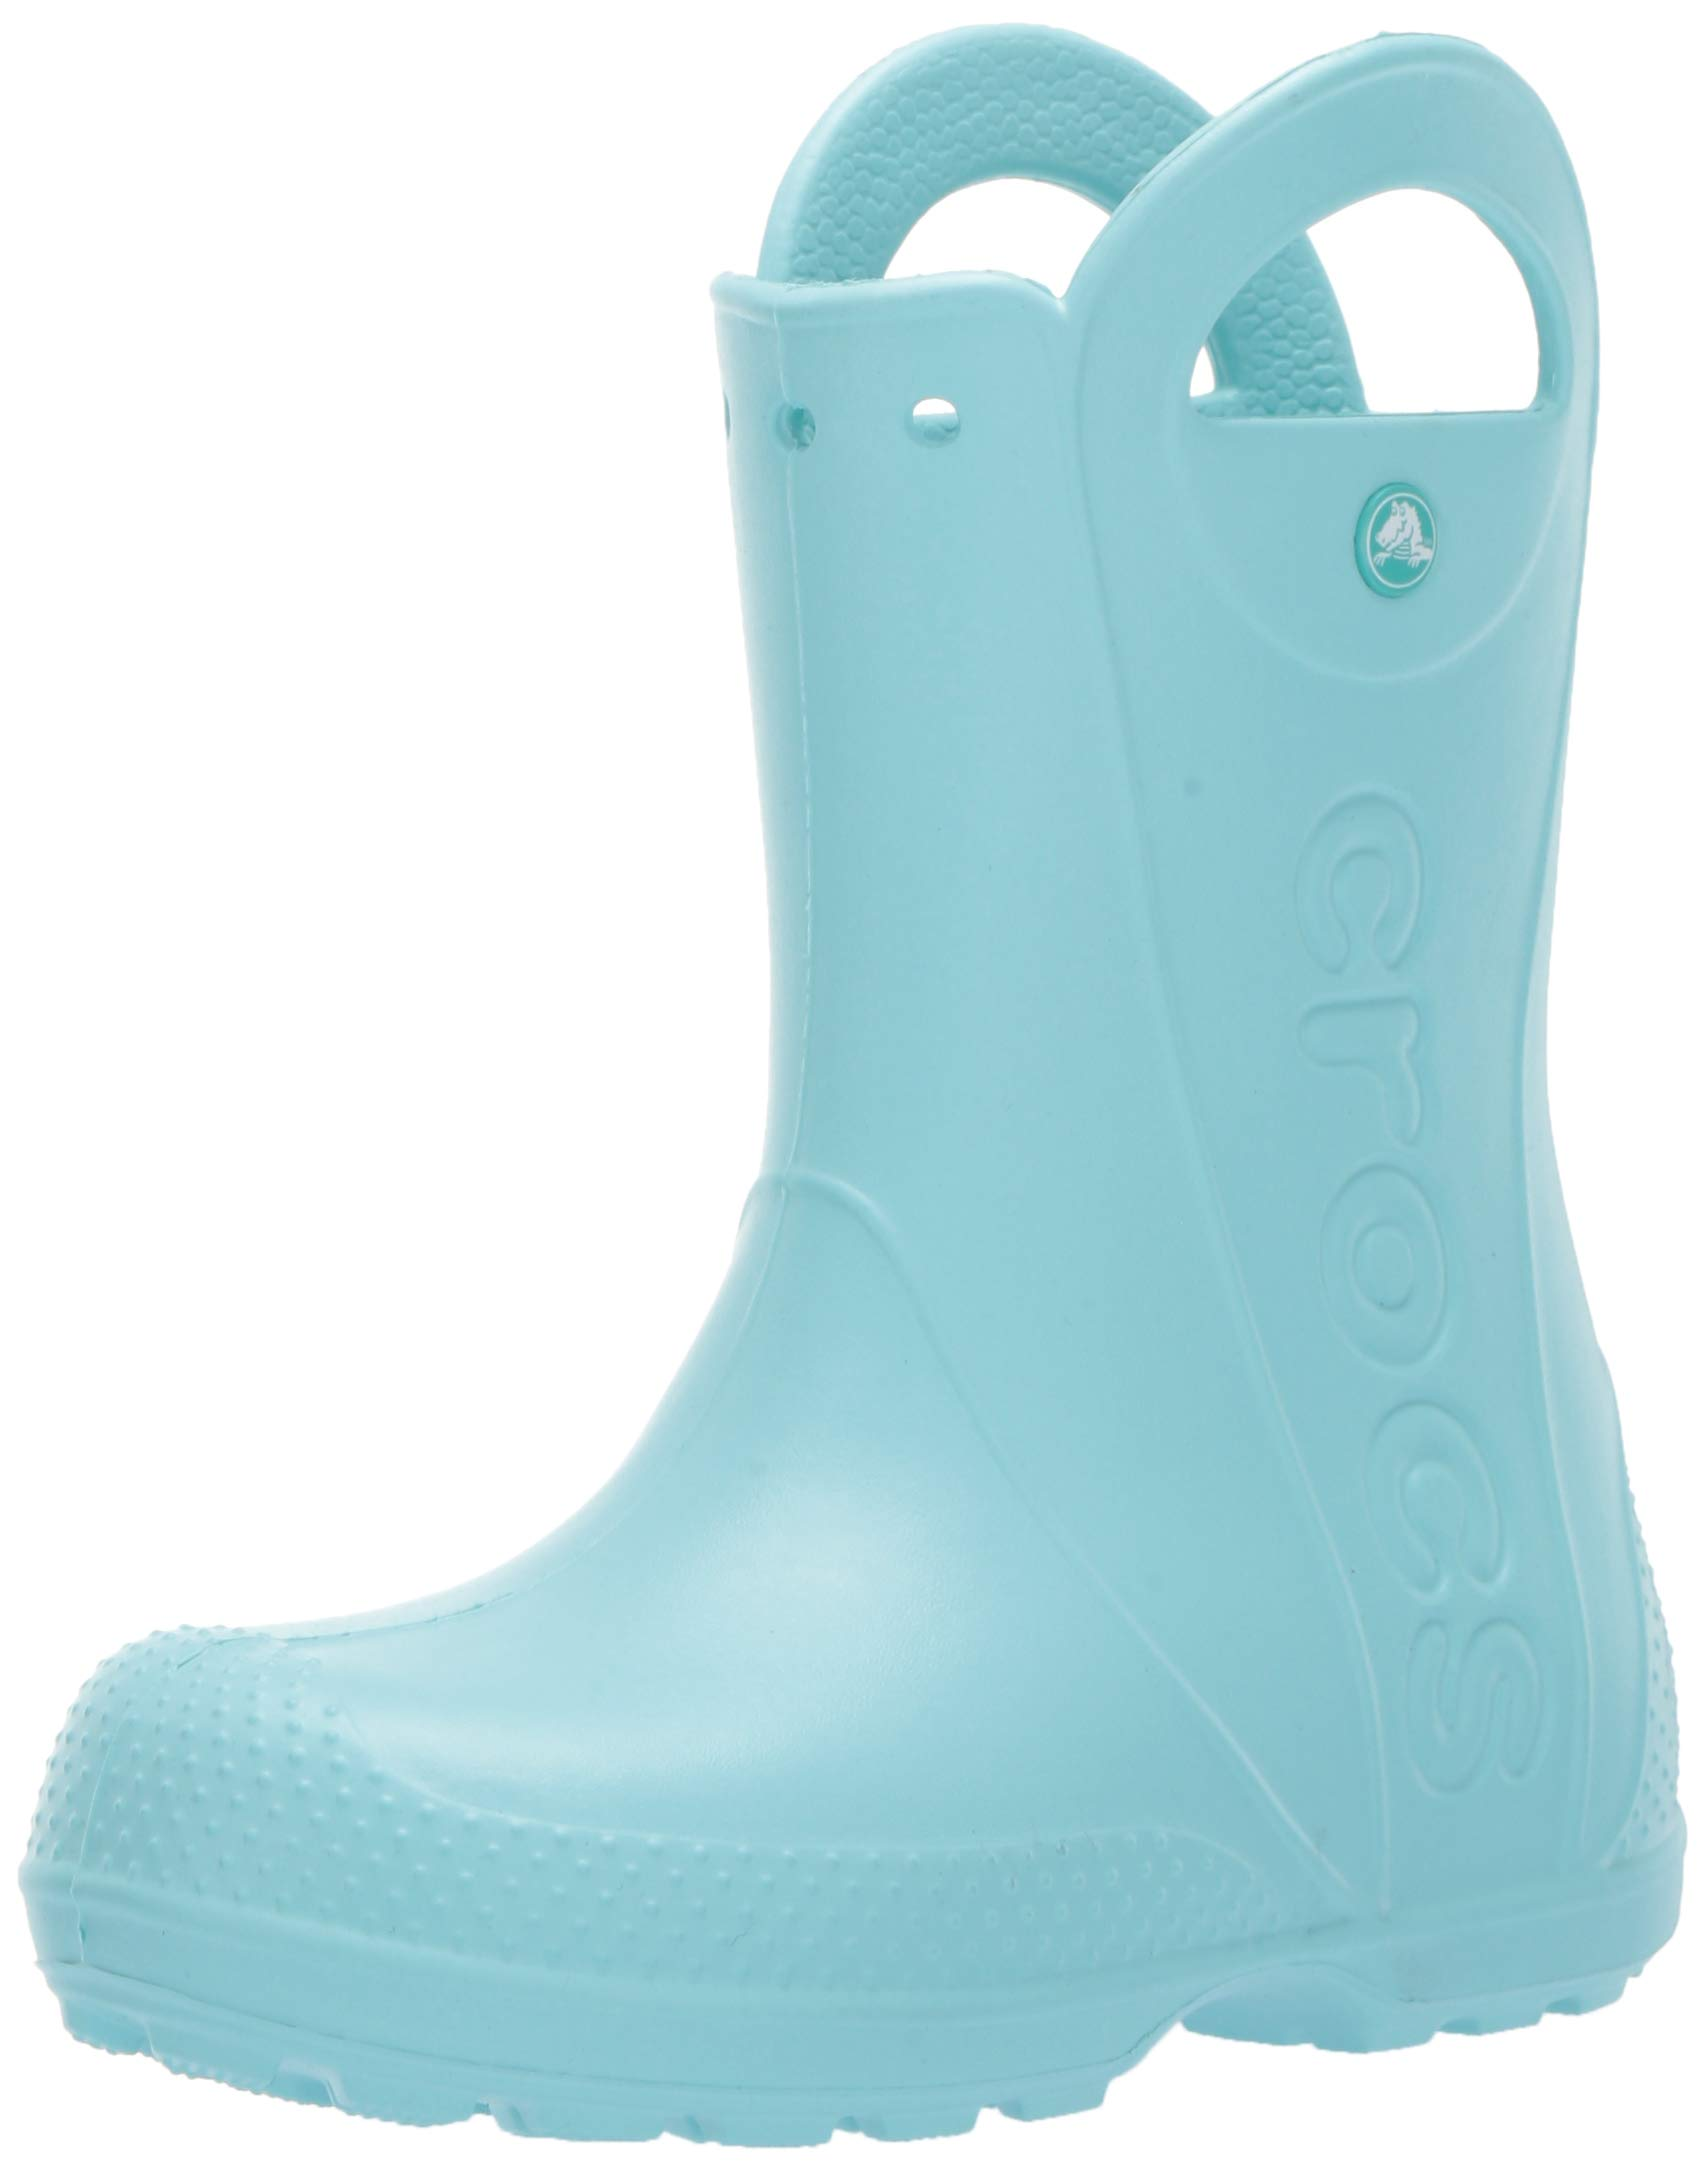 d663e6df68 Galleon - Crocs Kids' Handle It Rain Boots, Easy On For Toddlers, Boys,  Girls, Lightweight And Waterproof, Ice Blue, 6 M US Toddler